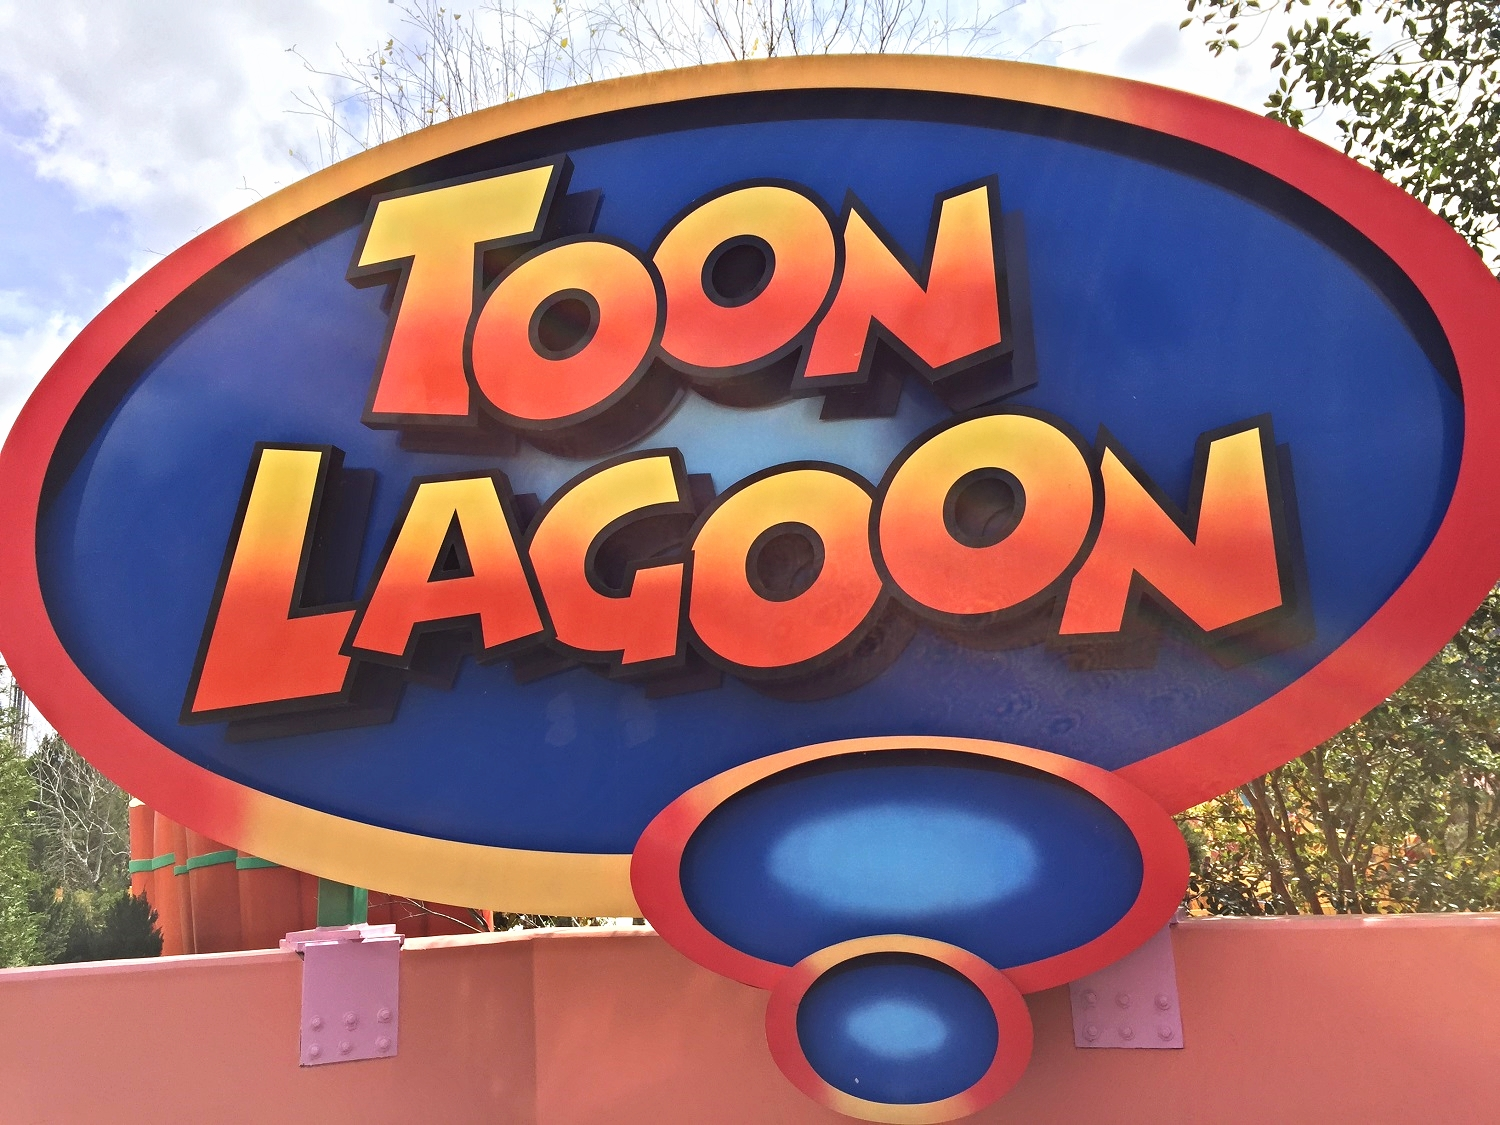 Sign Near the Entrance to Toon Lagoon